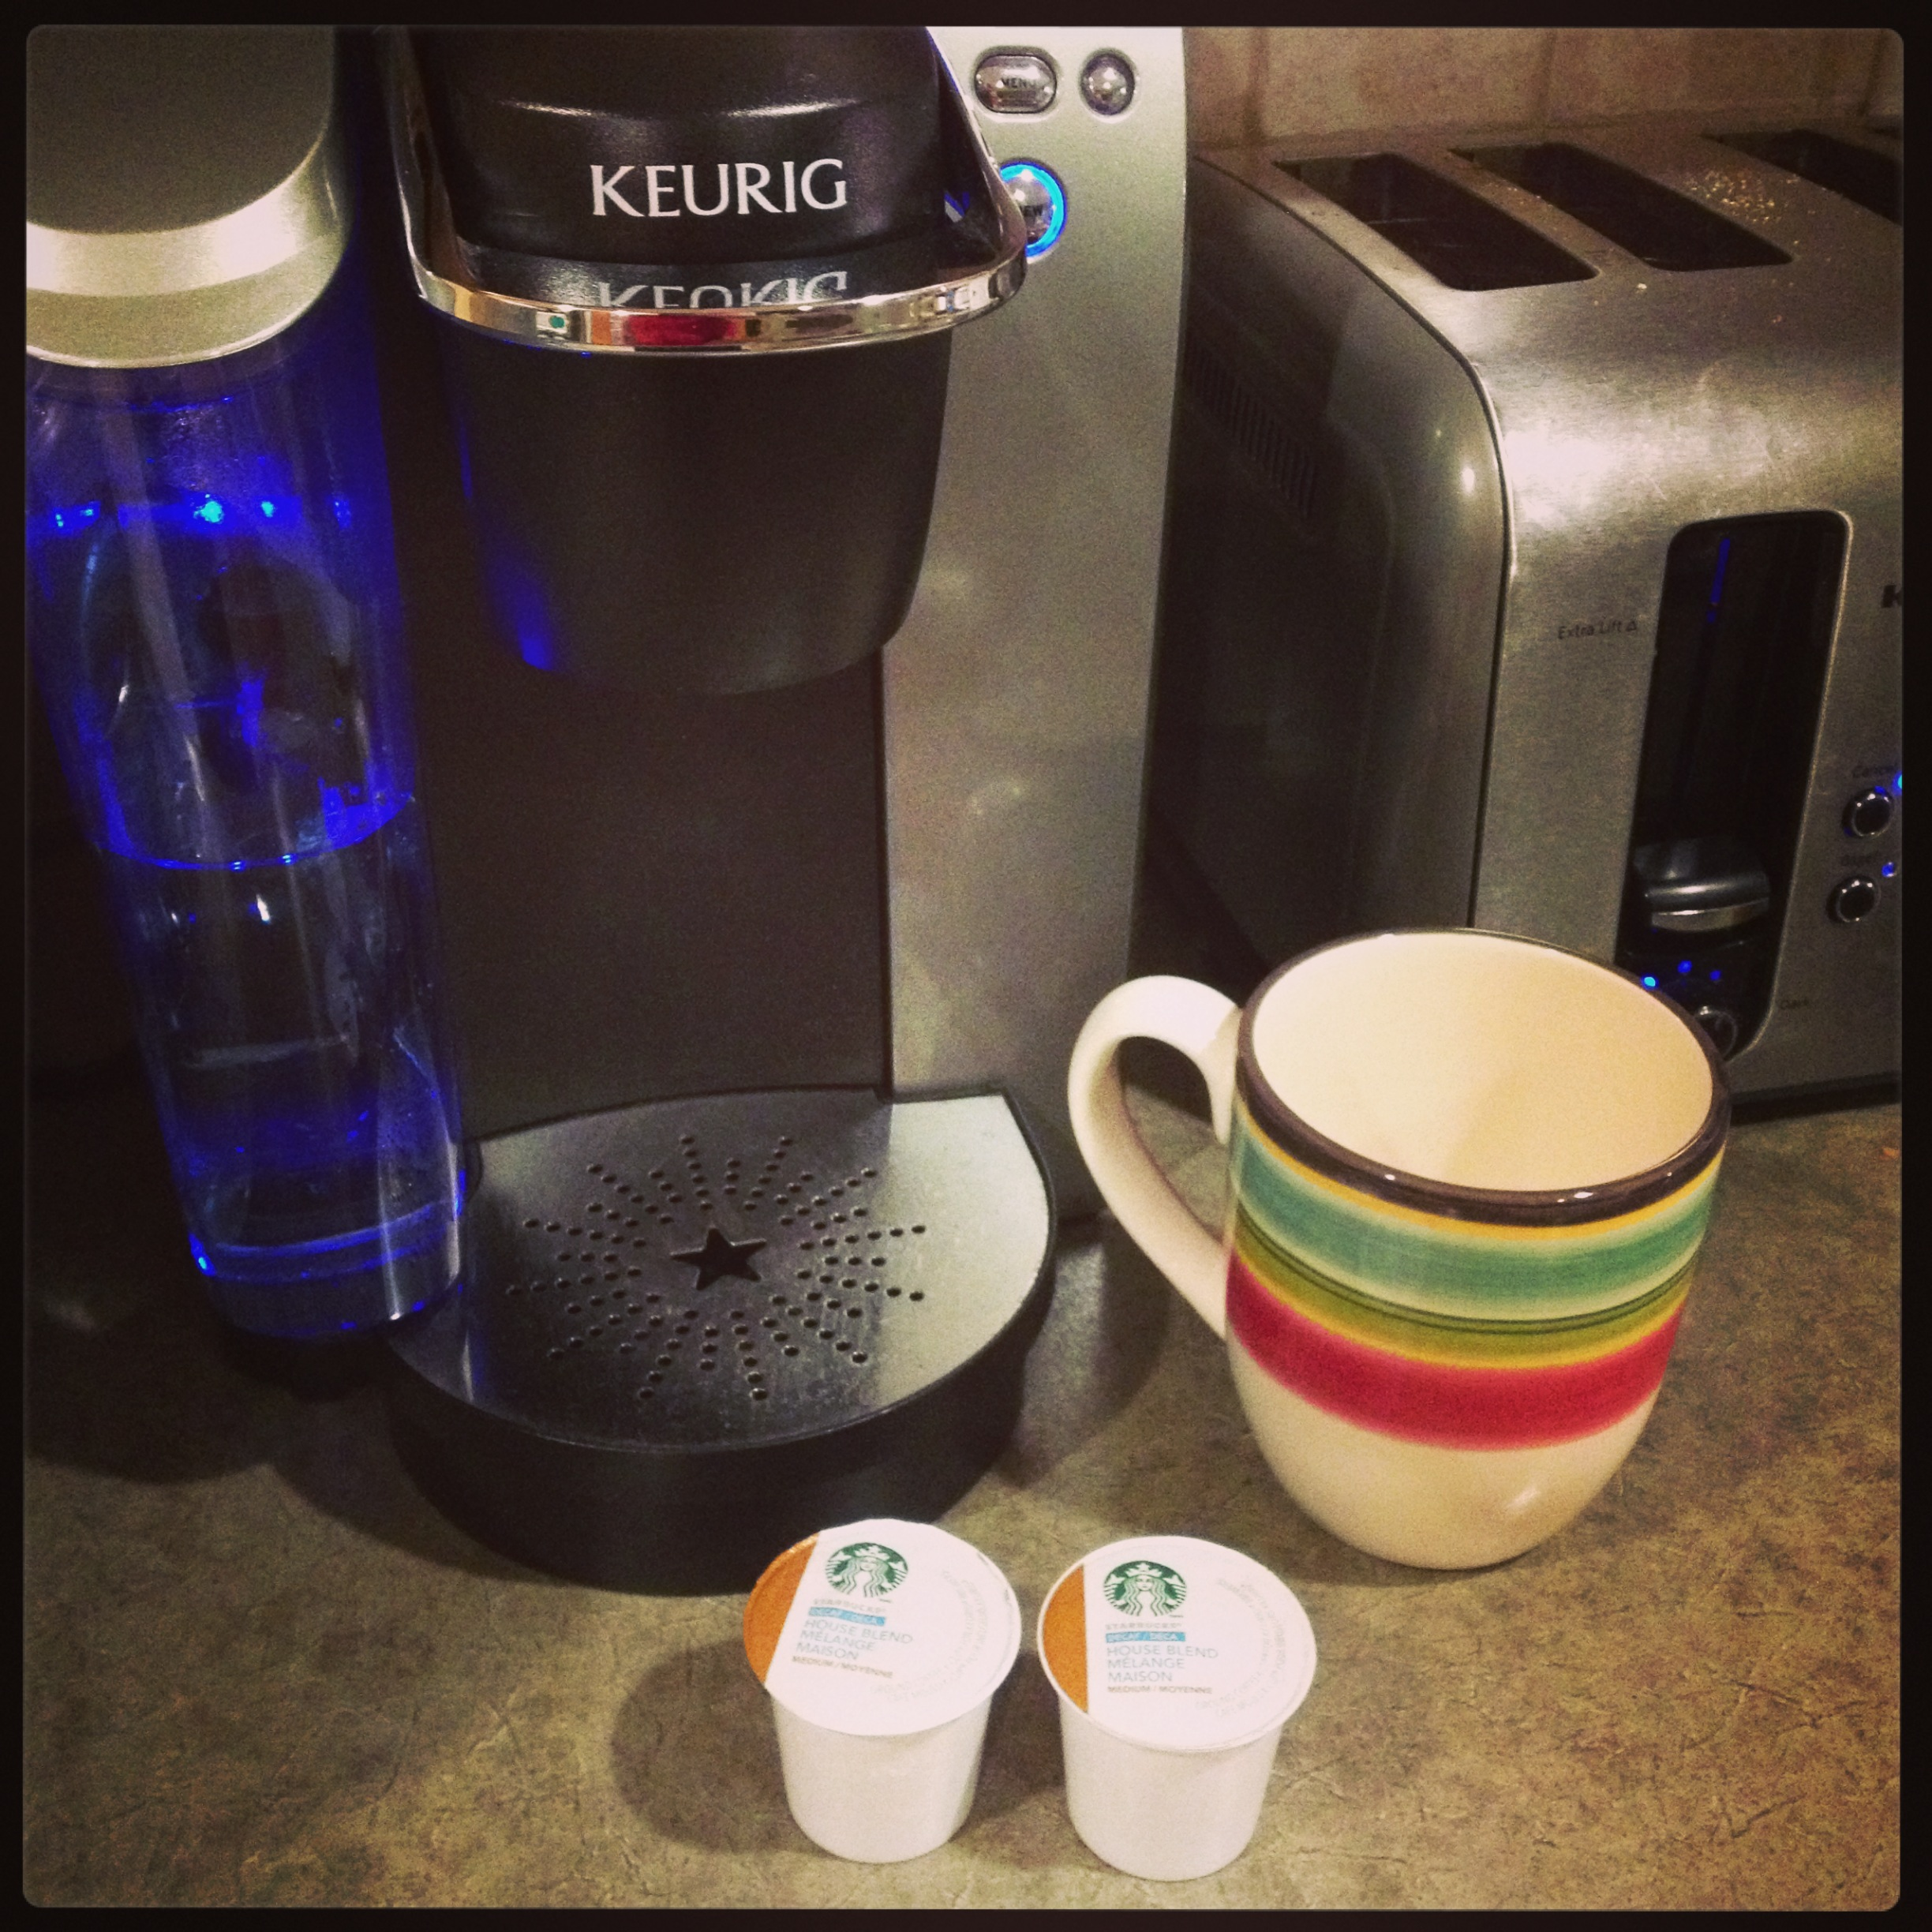 My Keurig and I have an understand…